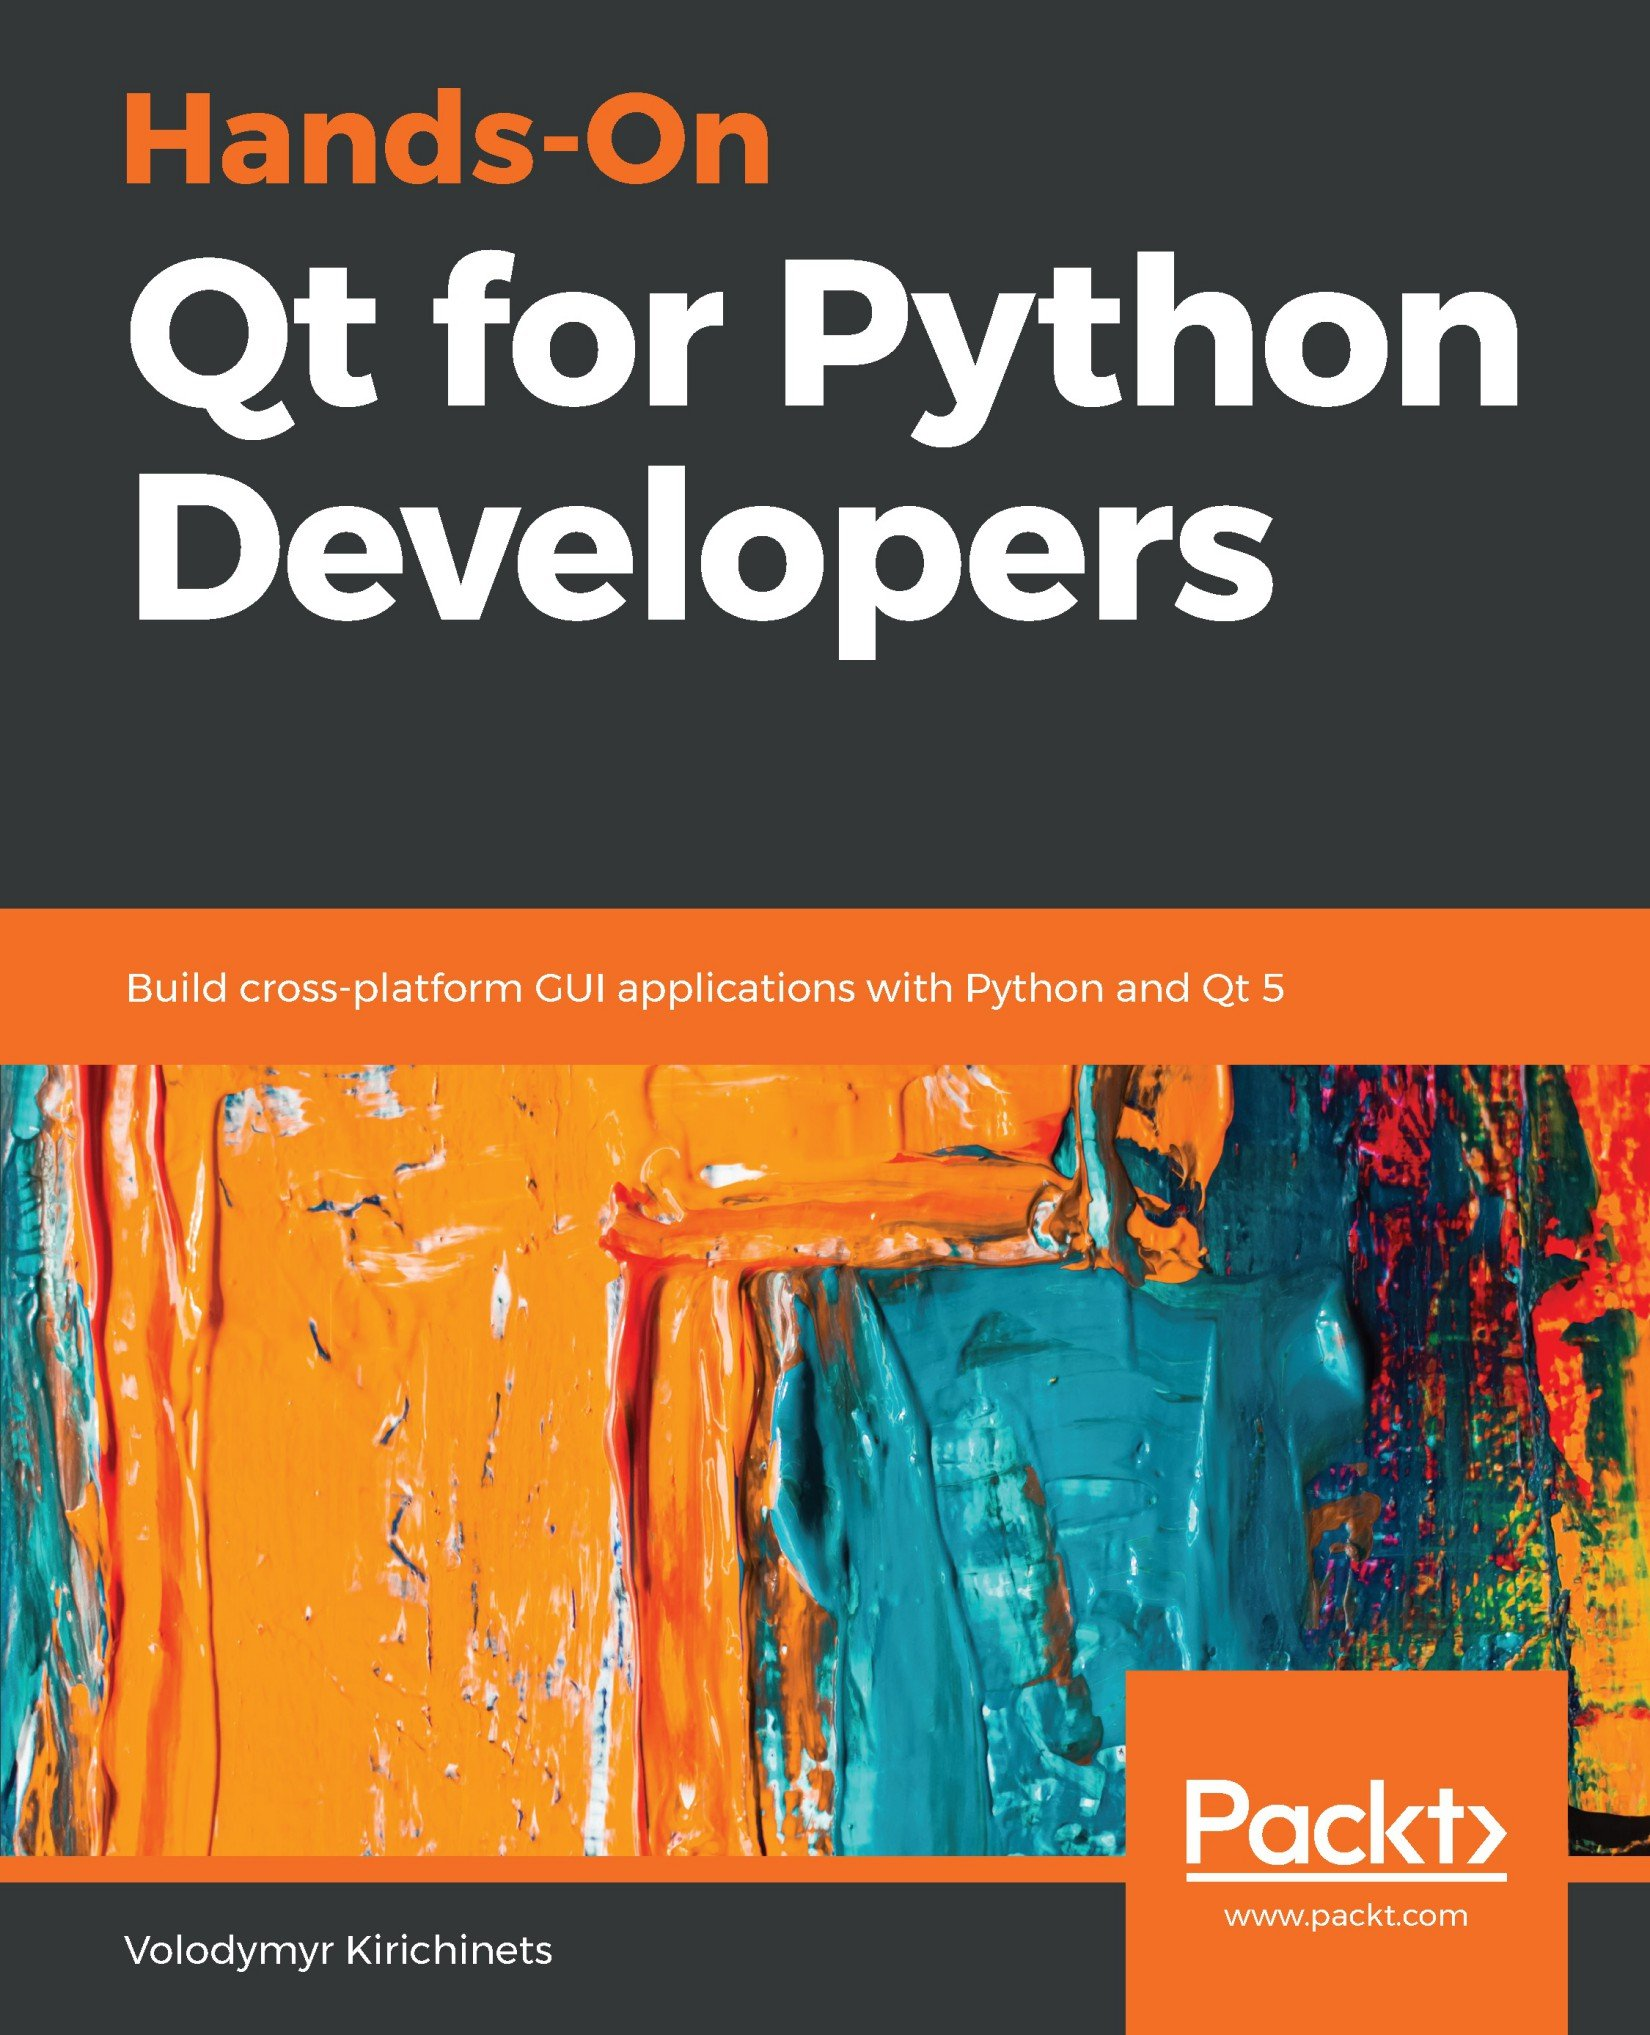 Download Hands-On Qt for Python Developers - SoftArchive